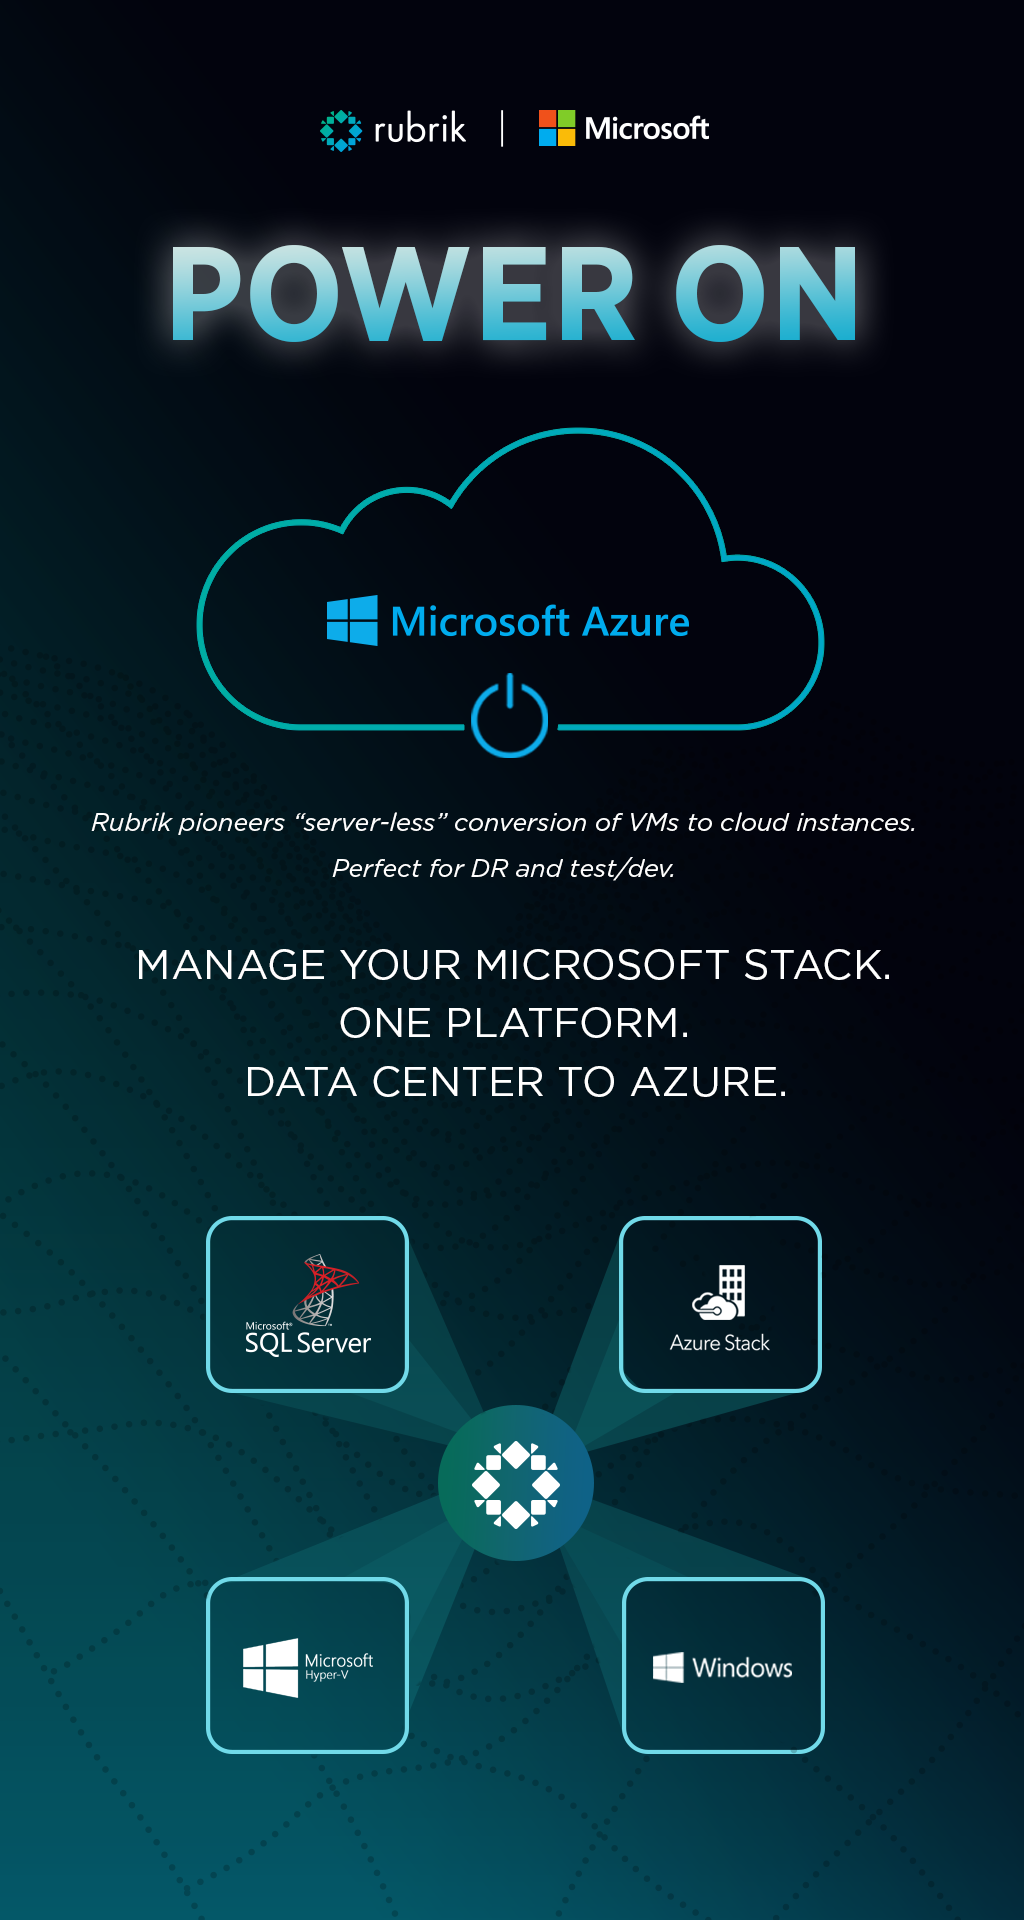 Rubrik and Microsoft (Infographic)